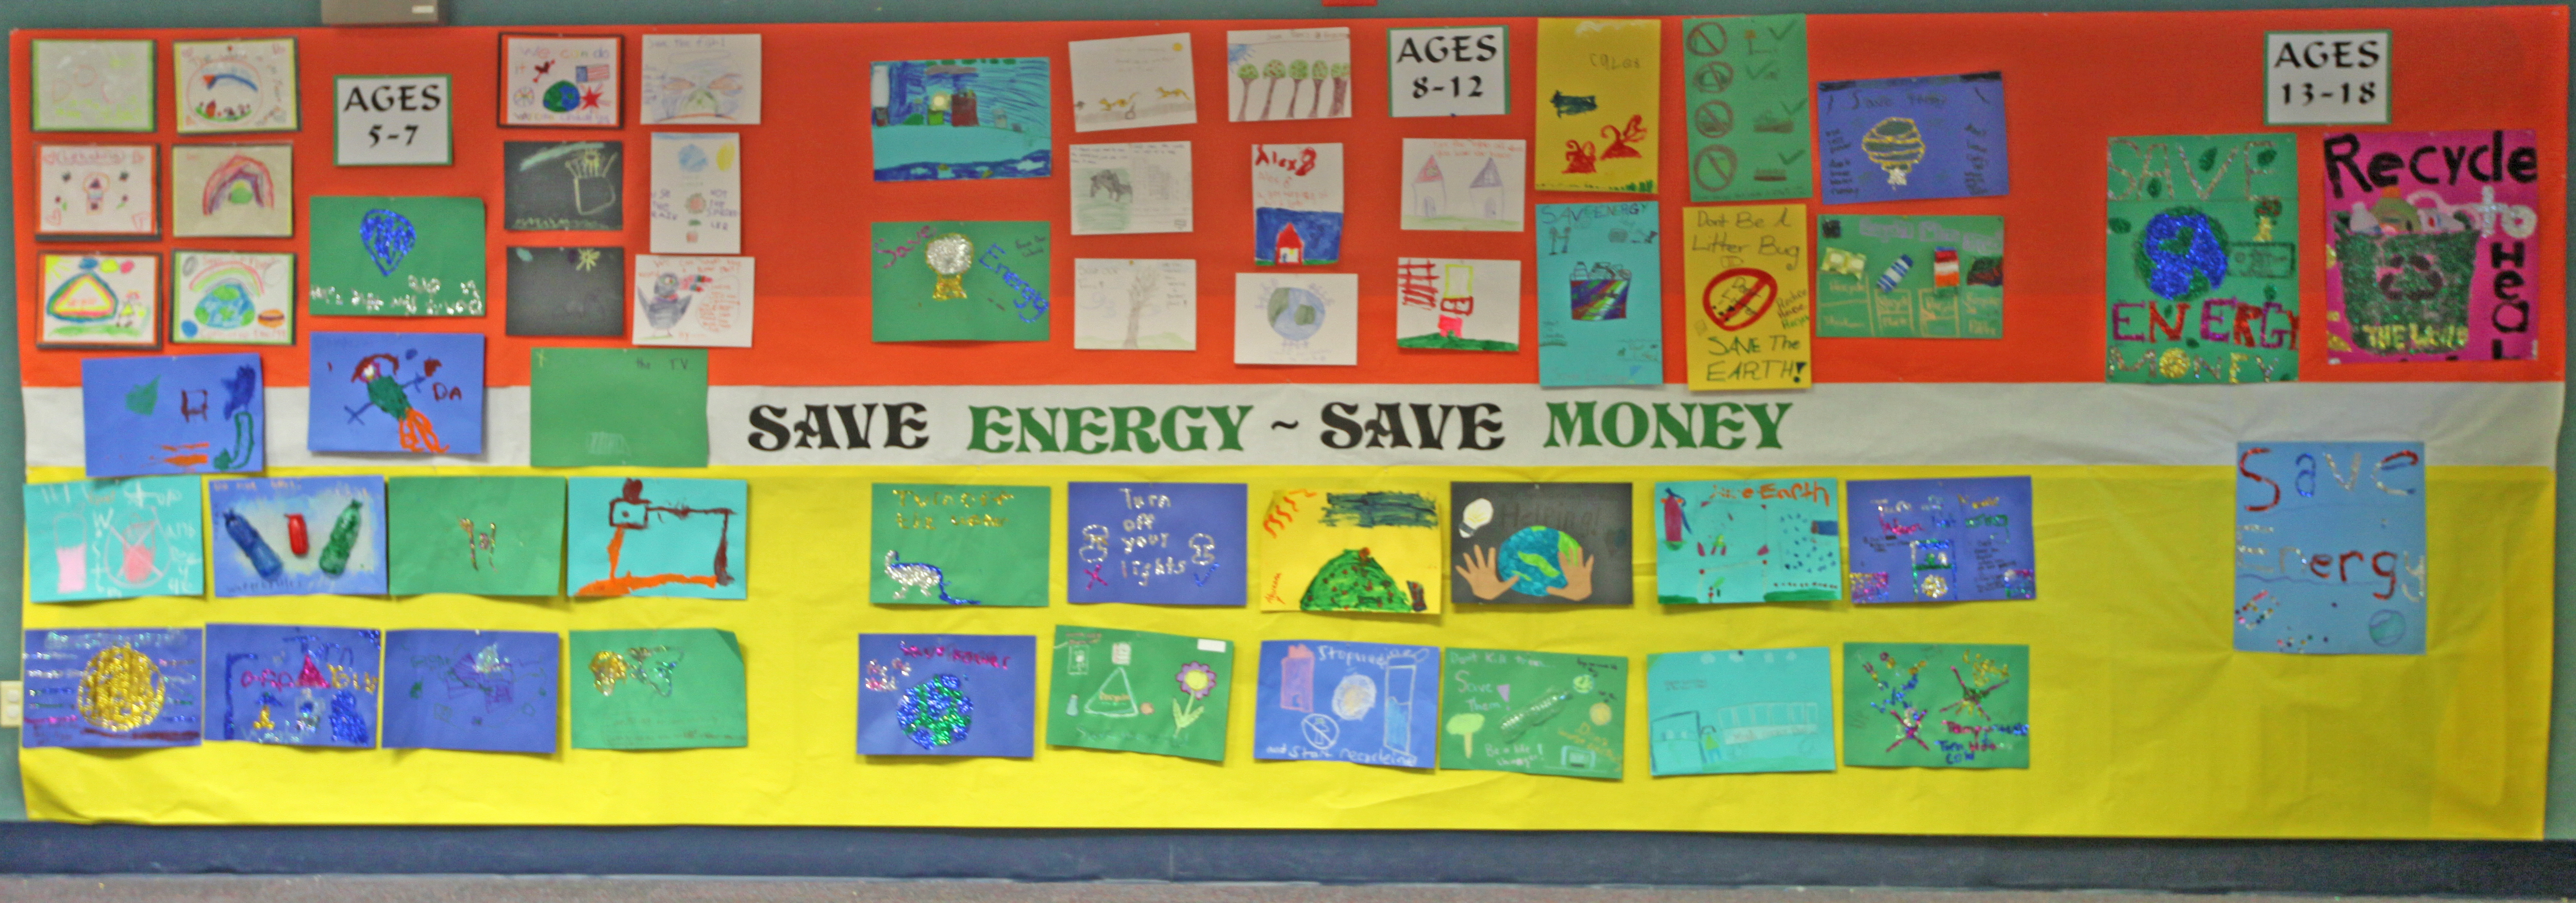 school wall touting energy savings